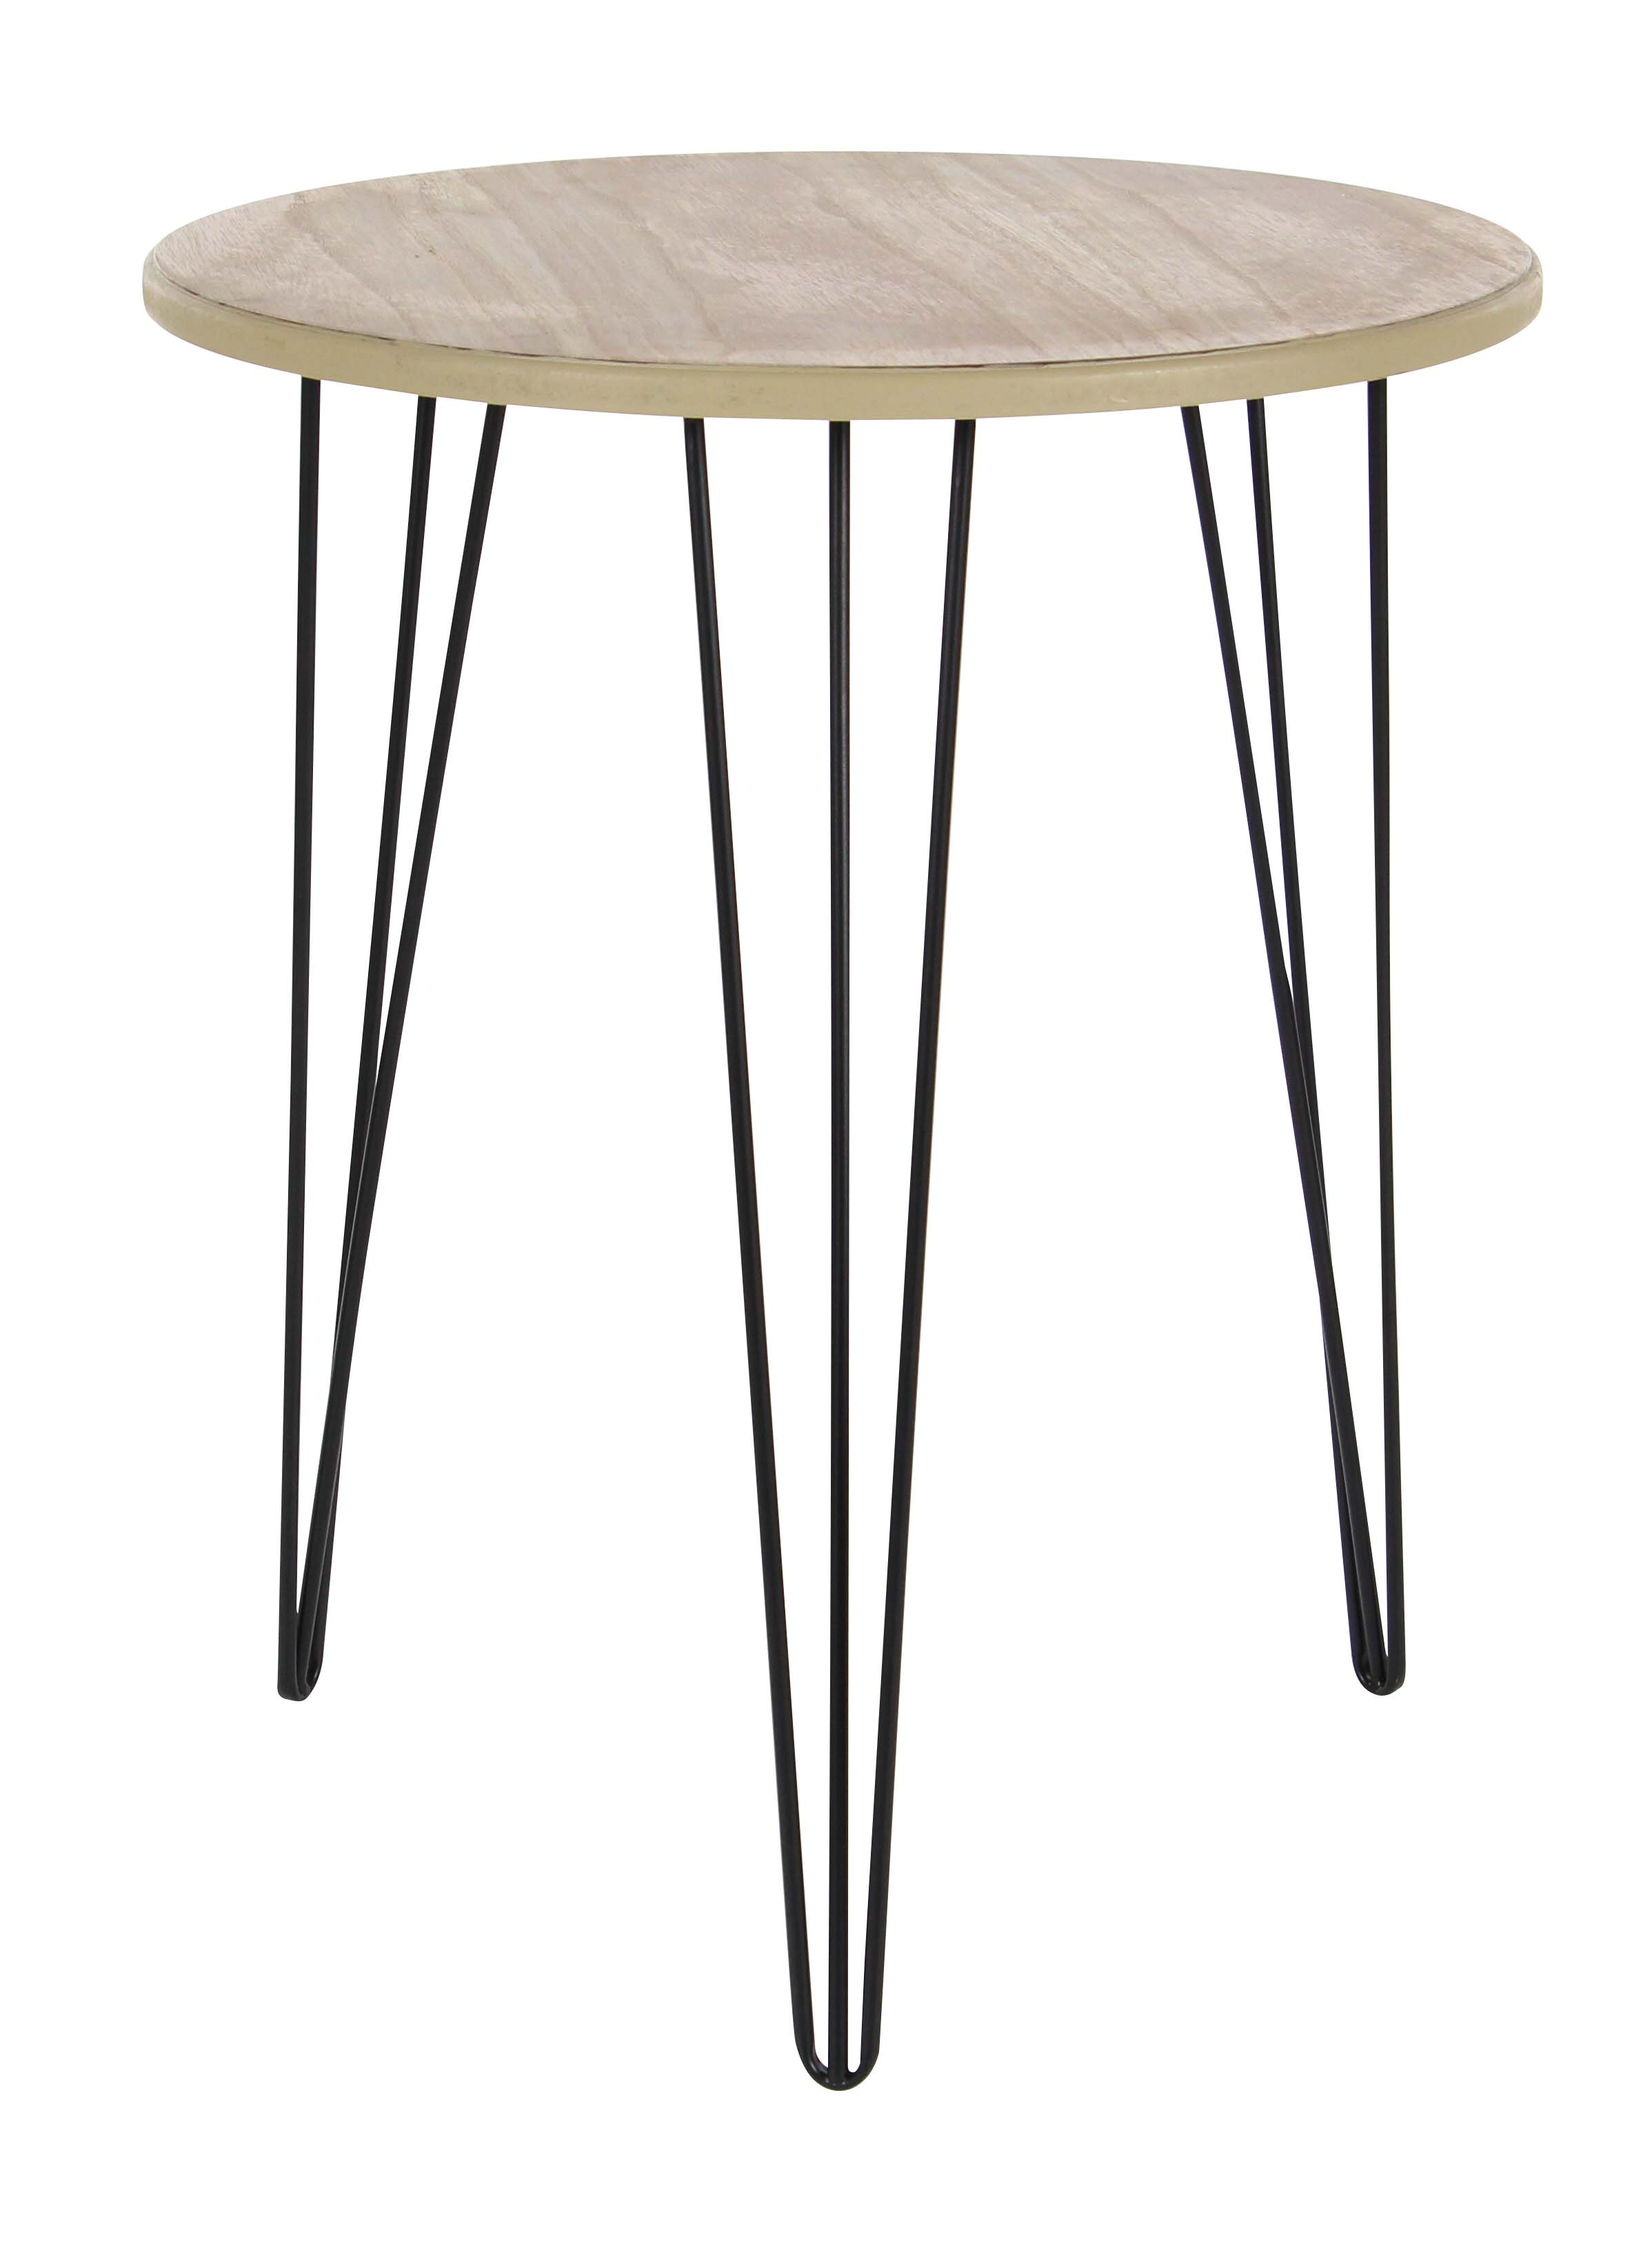 Decmode 22 X 18 Inch Modern Wood and Iron Round Accent Table, Brown by DecMode